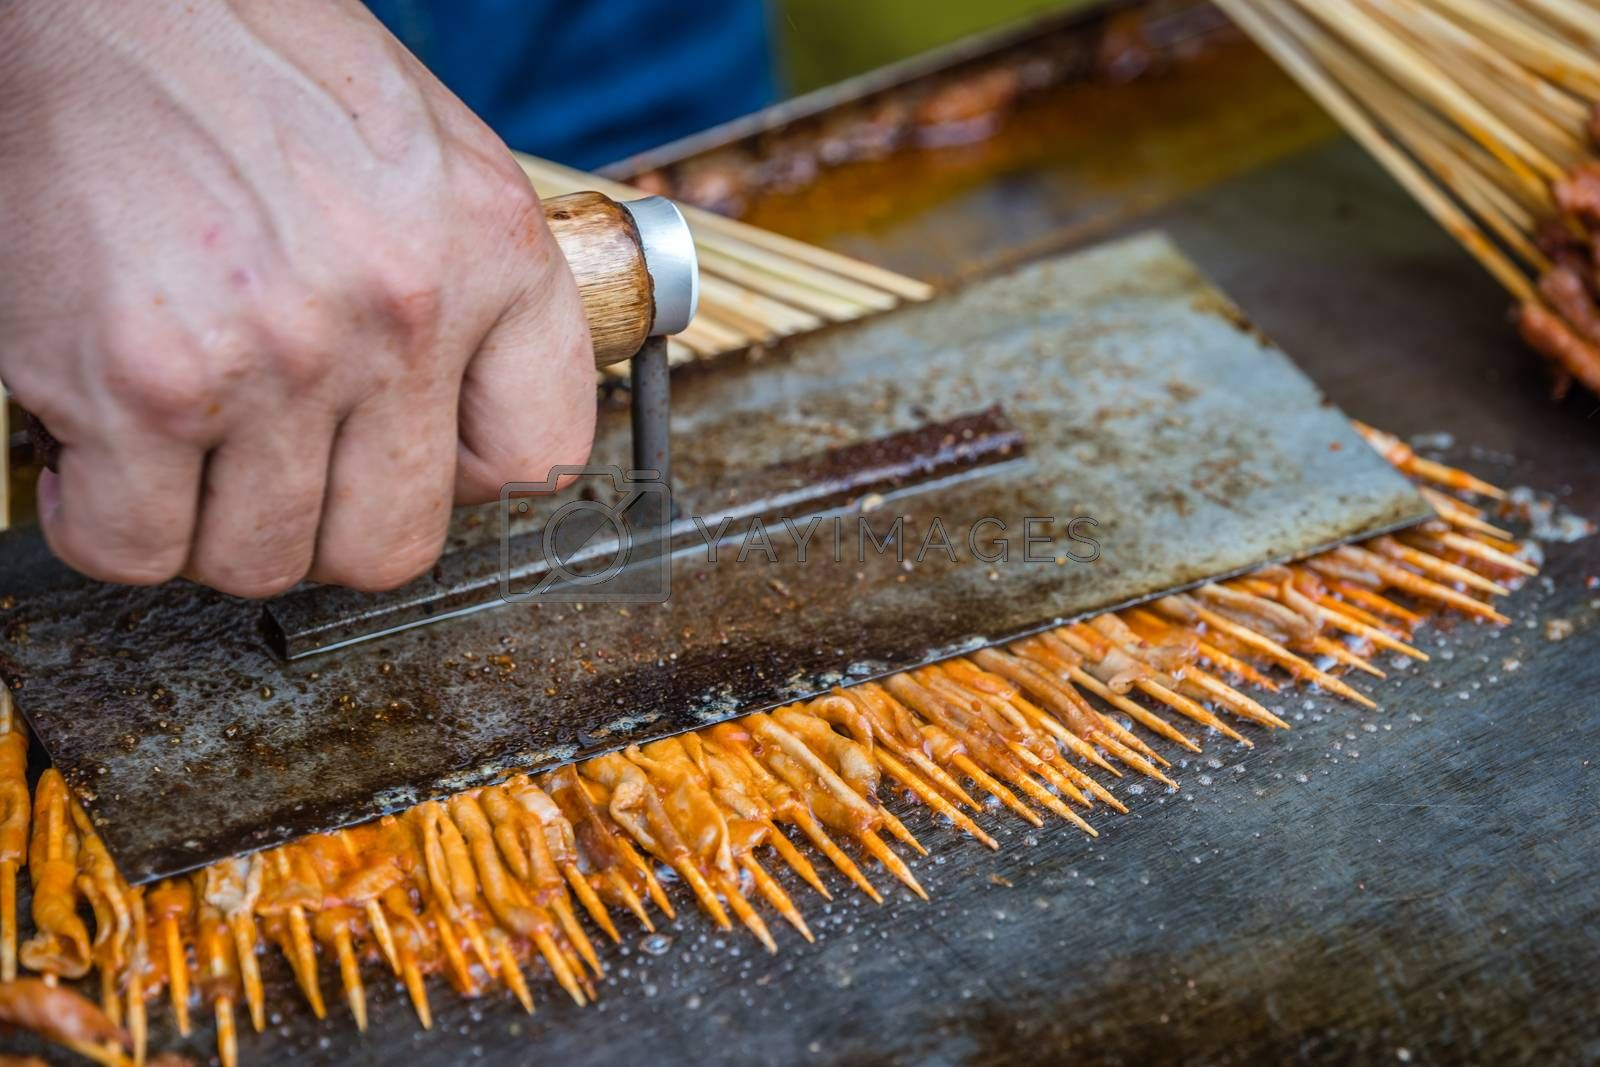 Portions of raw meat, vegetables and seafood on wooden sticks cooked and fried on a hot plate on the street food market in the Muslim Quarter, Xian town, China